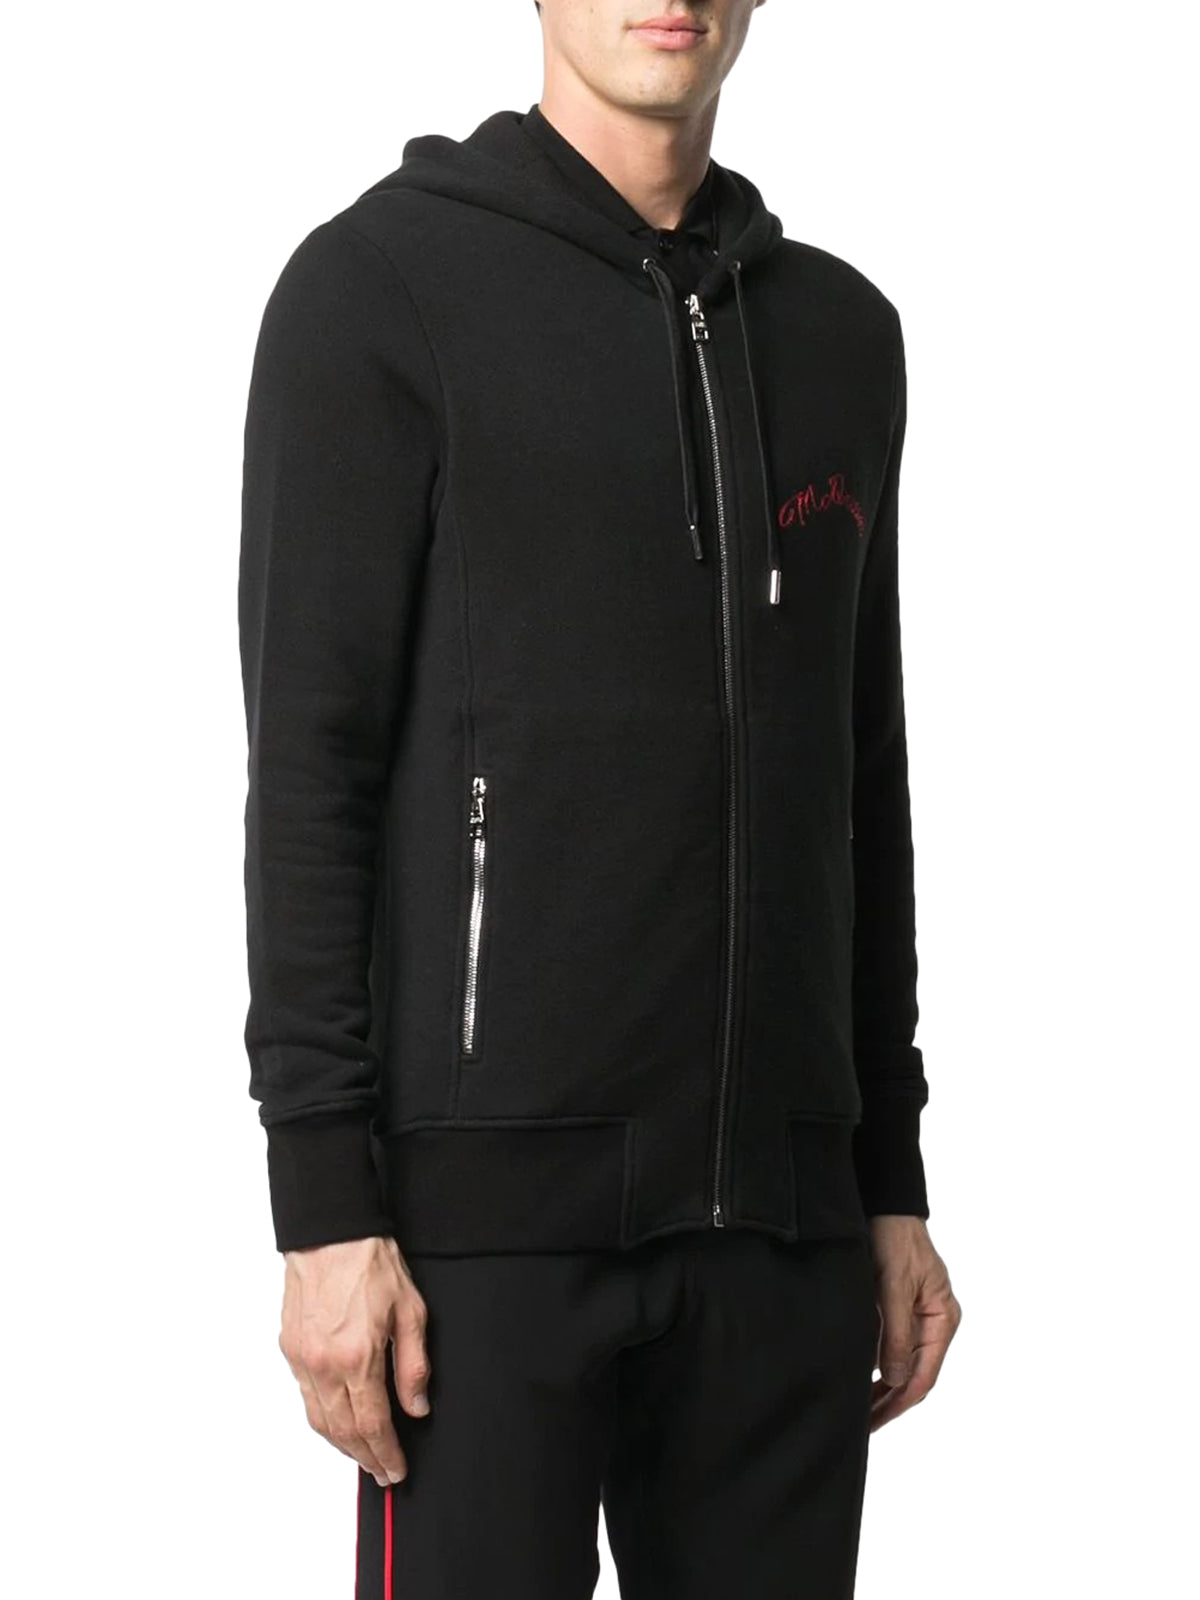 embroidered logo zip-up hoodie